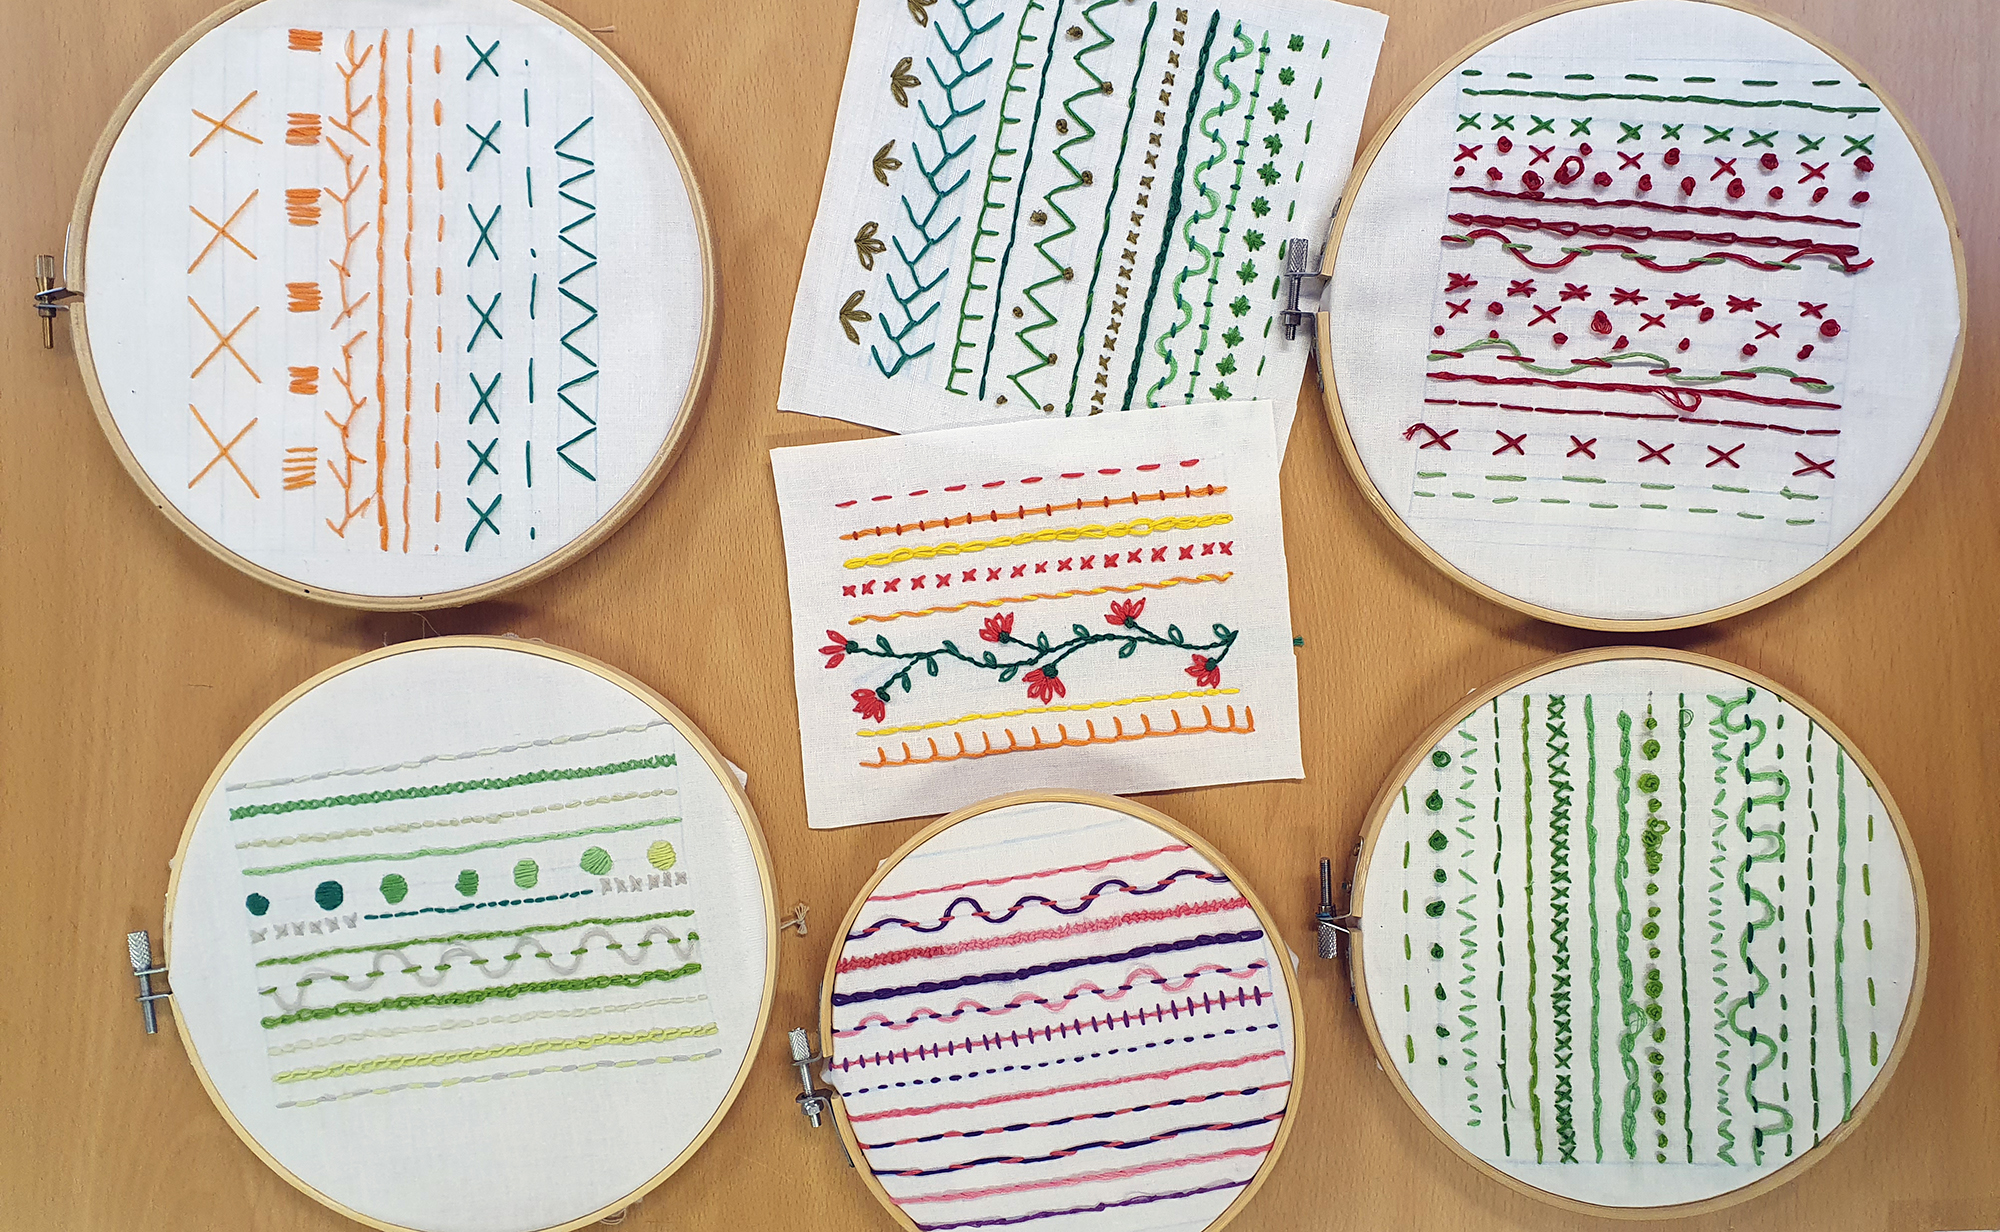 Year 9 embroidery